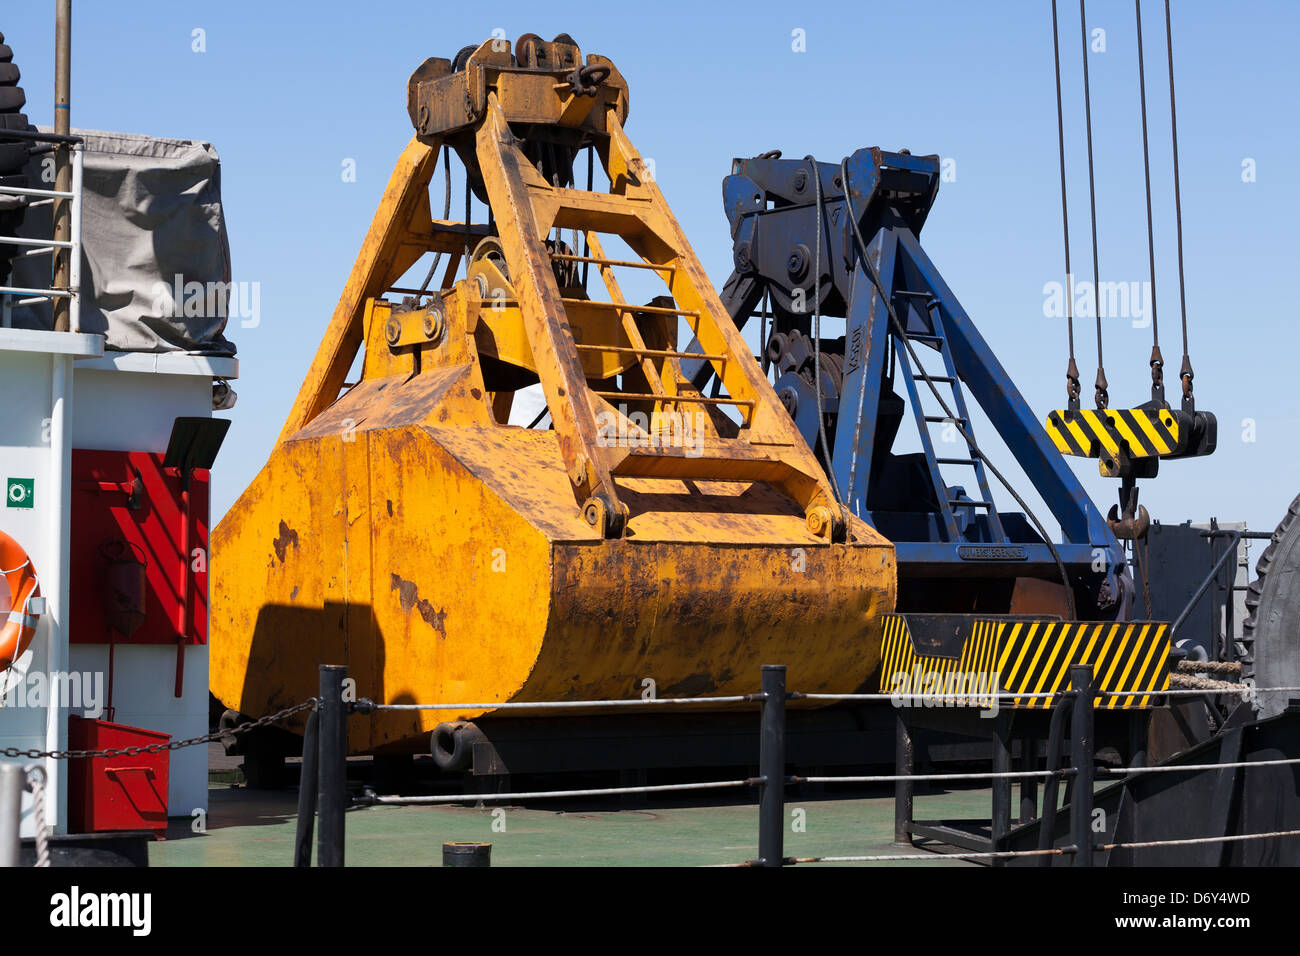 industrial buckets barge aboard used - Stock Image